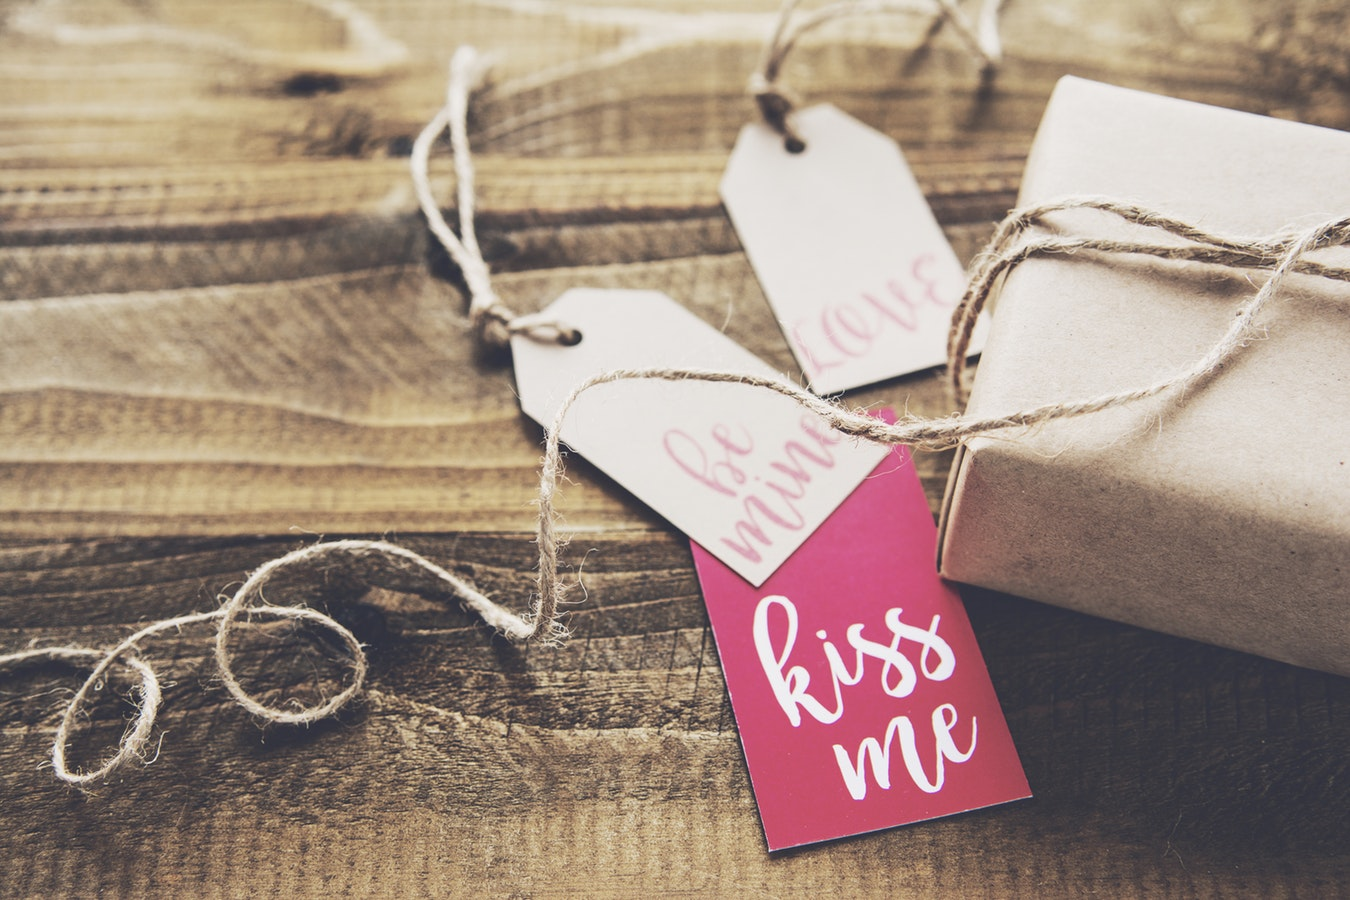 Top 5 Valentine's Day gift suggestions for men